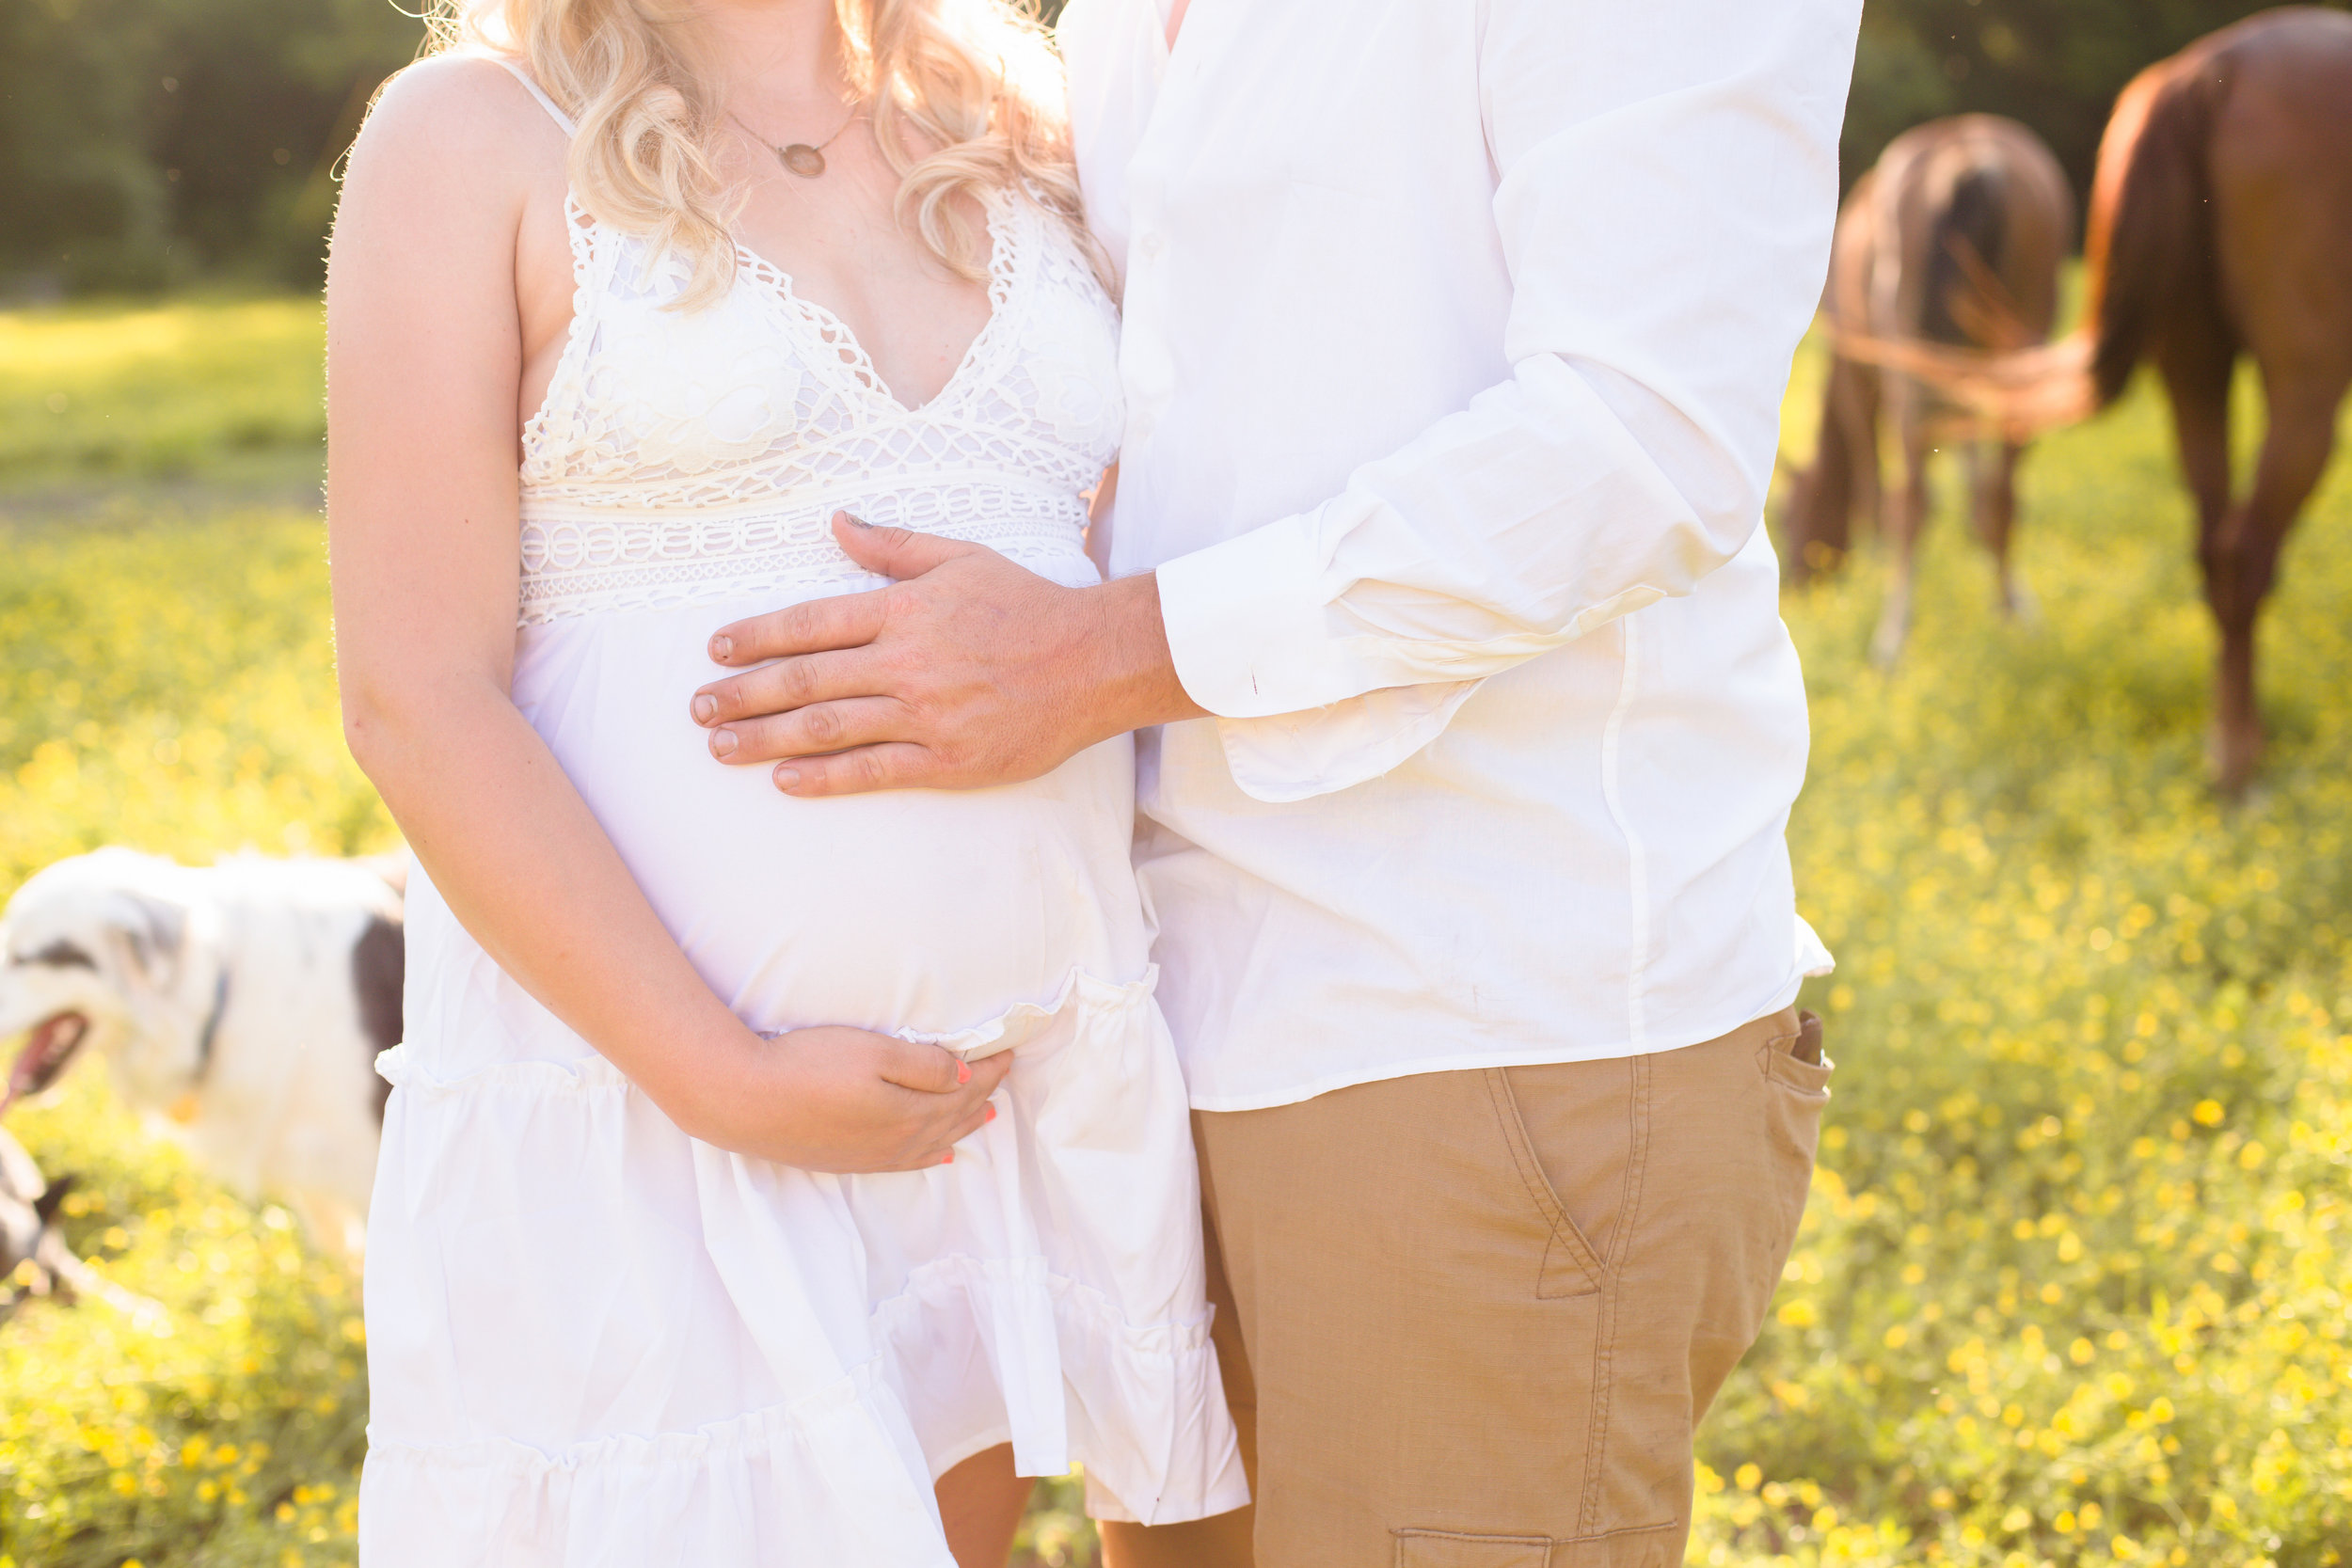 Savanna & Terry Maternity Session - Nashville Newborn Photographer - Chelsea Meadows Photography (40).jpg